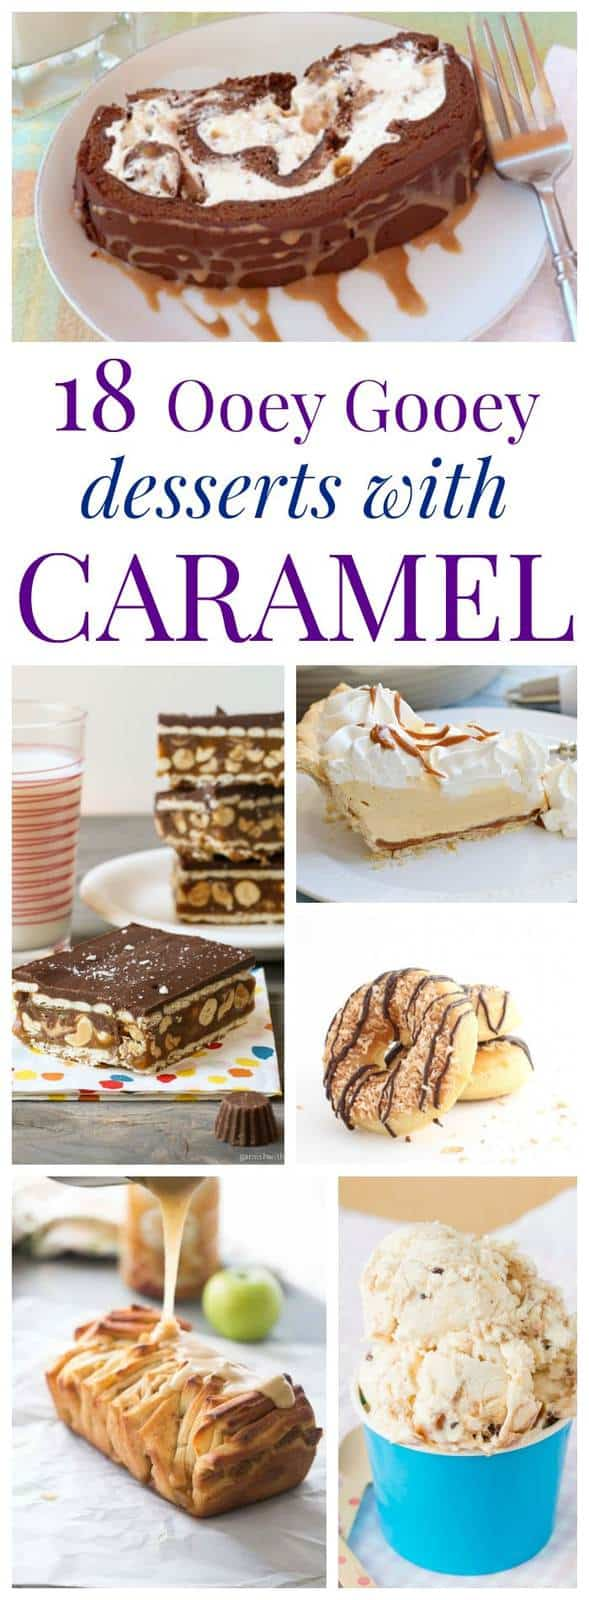 18 Ooey Gooey Desserts With Caramel - you'll love these sweet dessert recipes